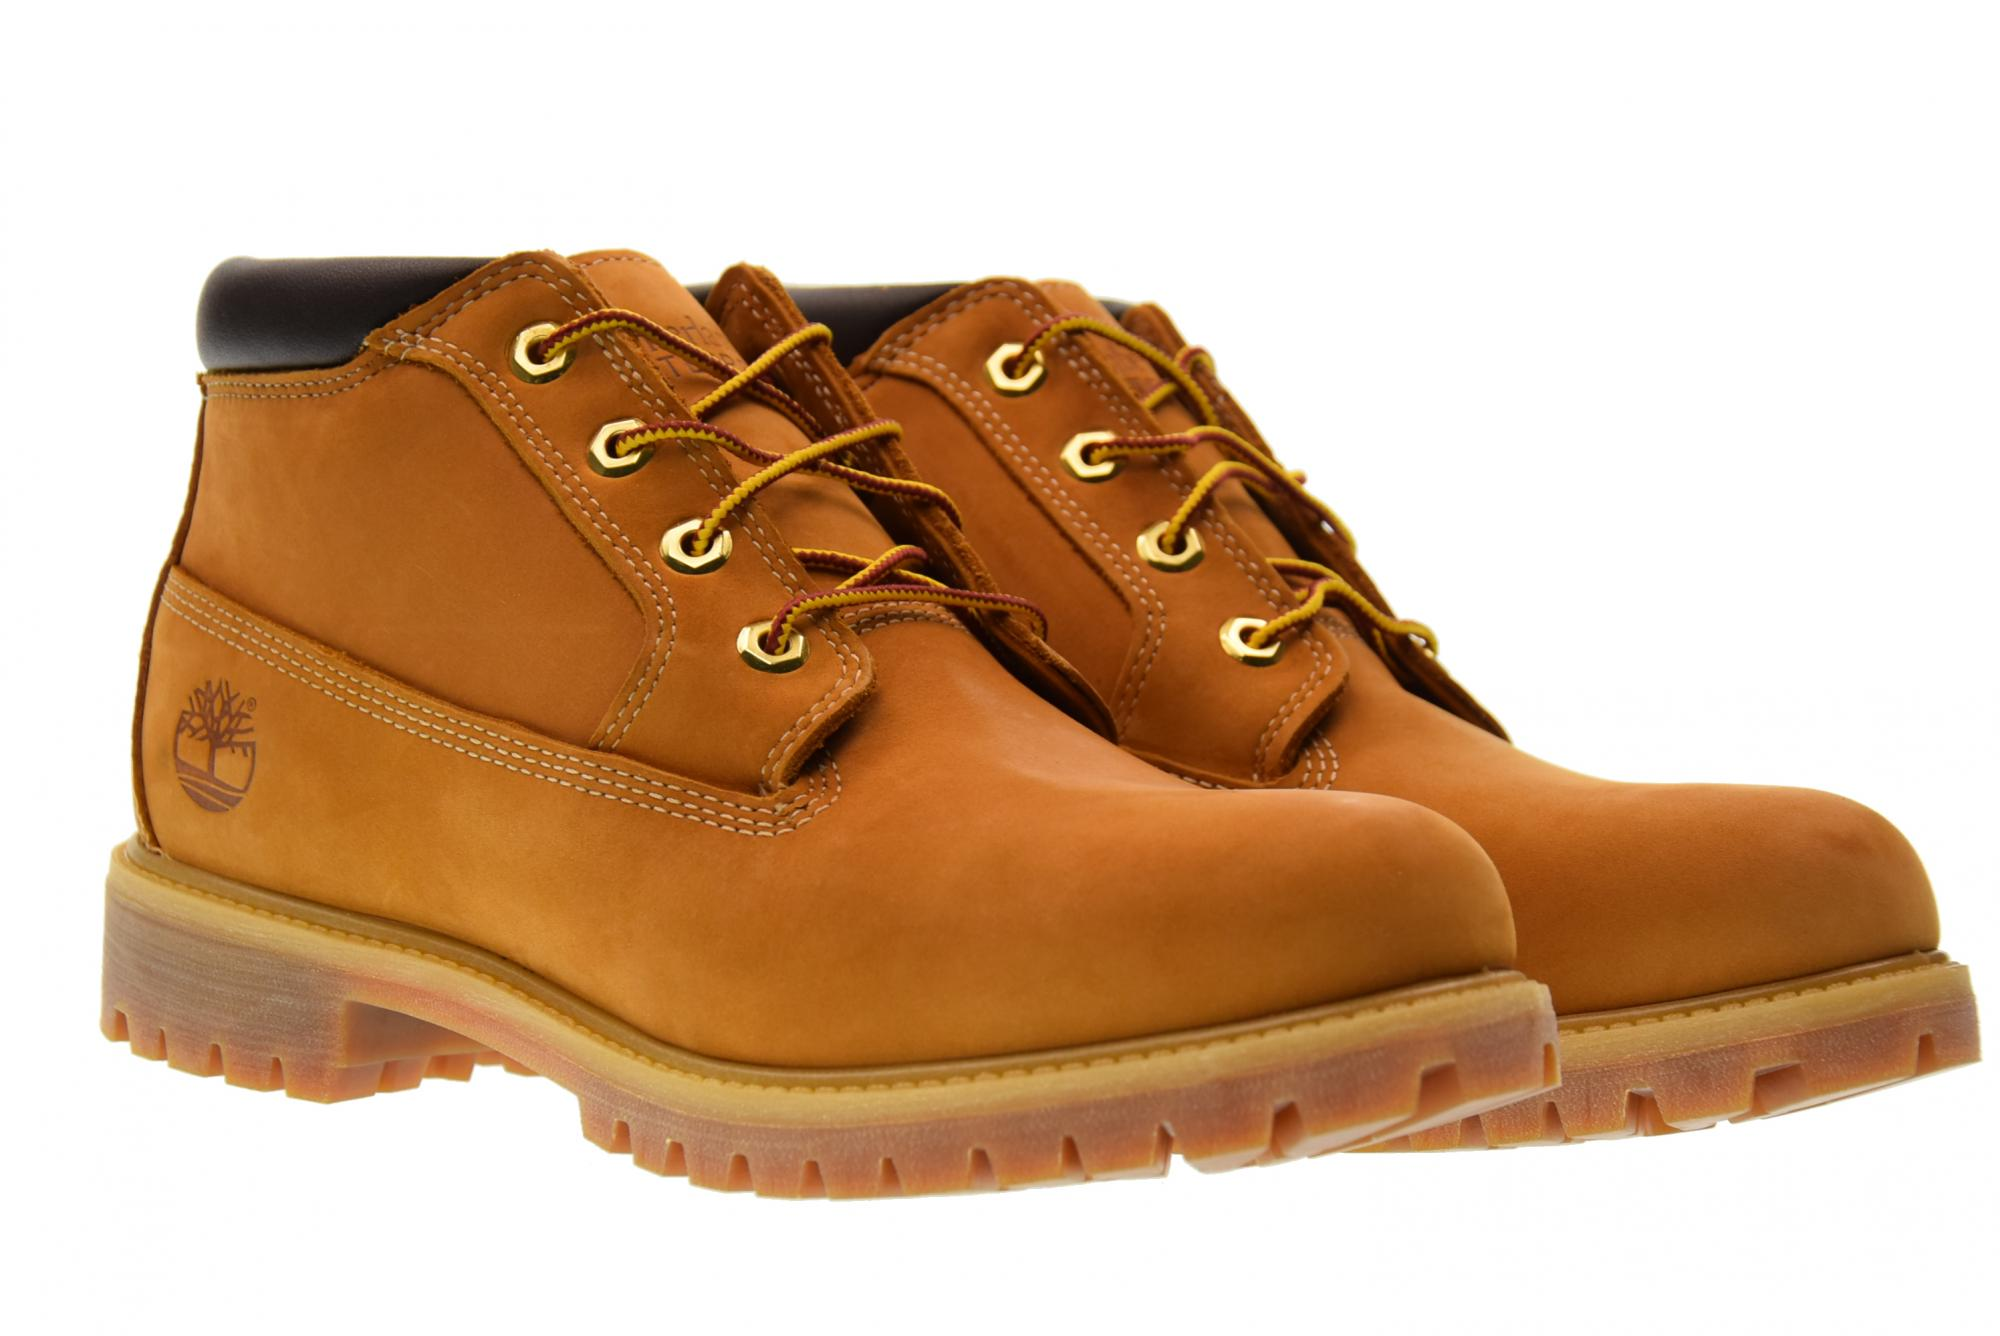 Timberland A17u low boot man 23061 | eBay